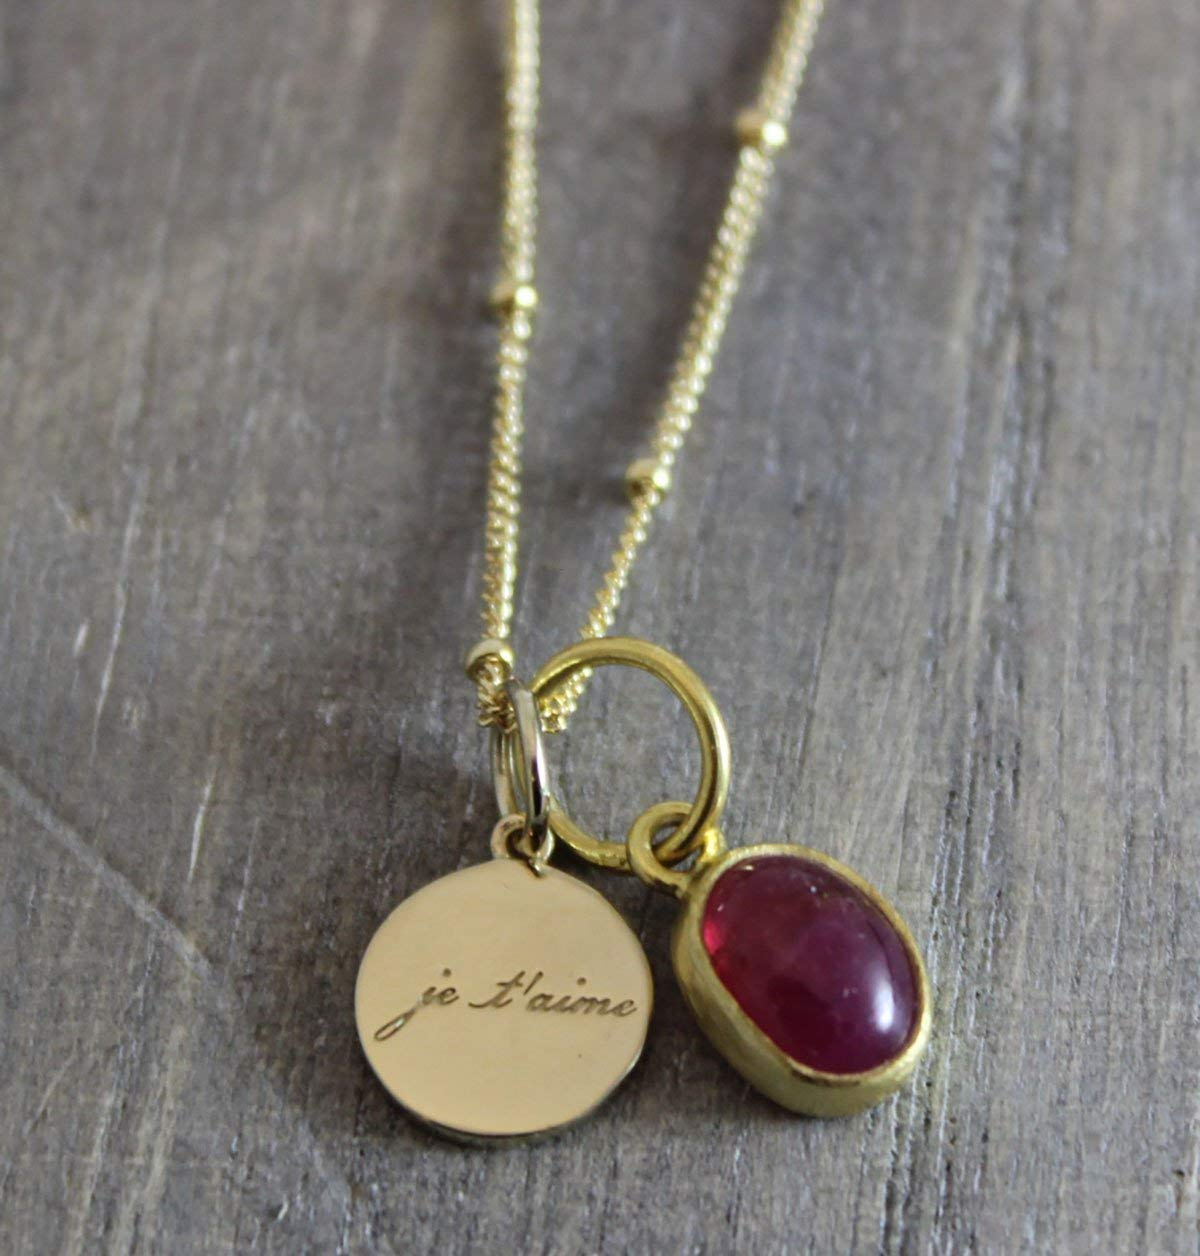 Pink Tourmaline Je'taime I Love You Charm Pendant 14kt Gold Filled Necklace 18 inches